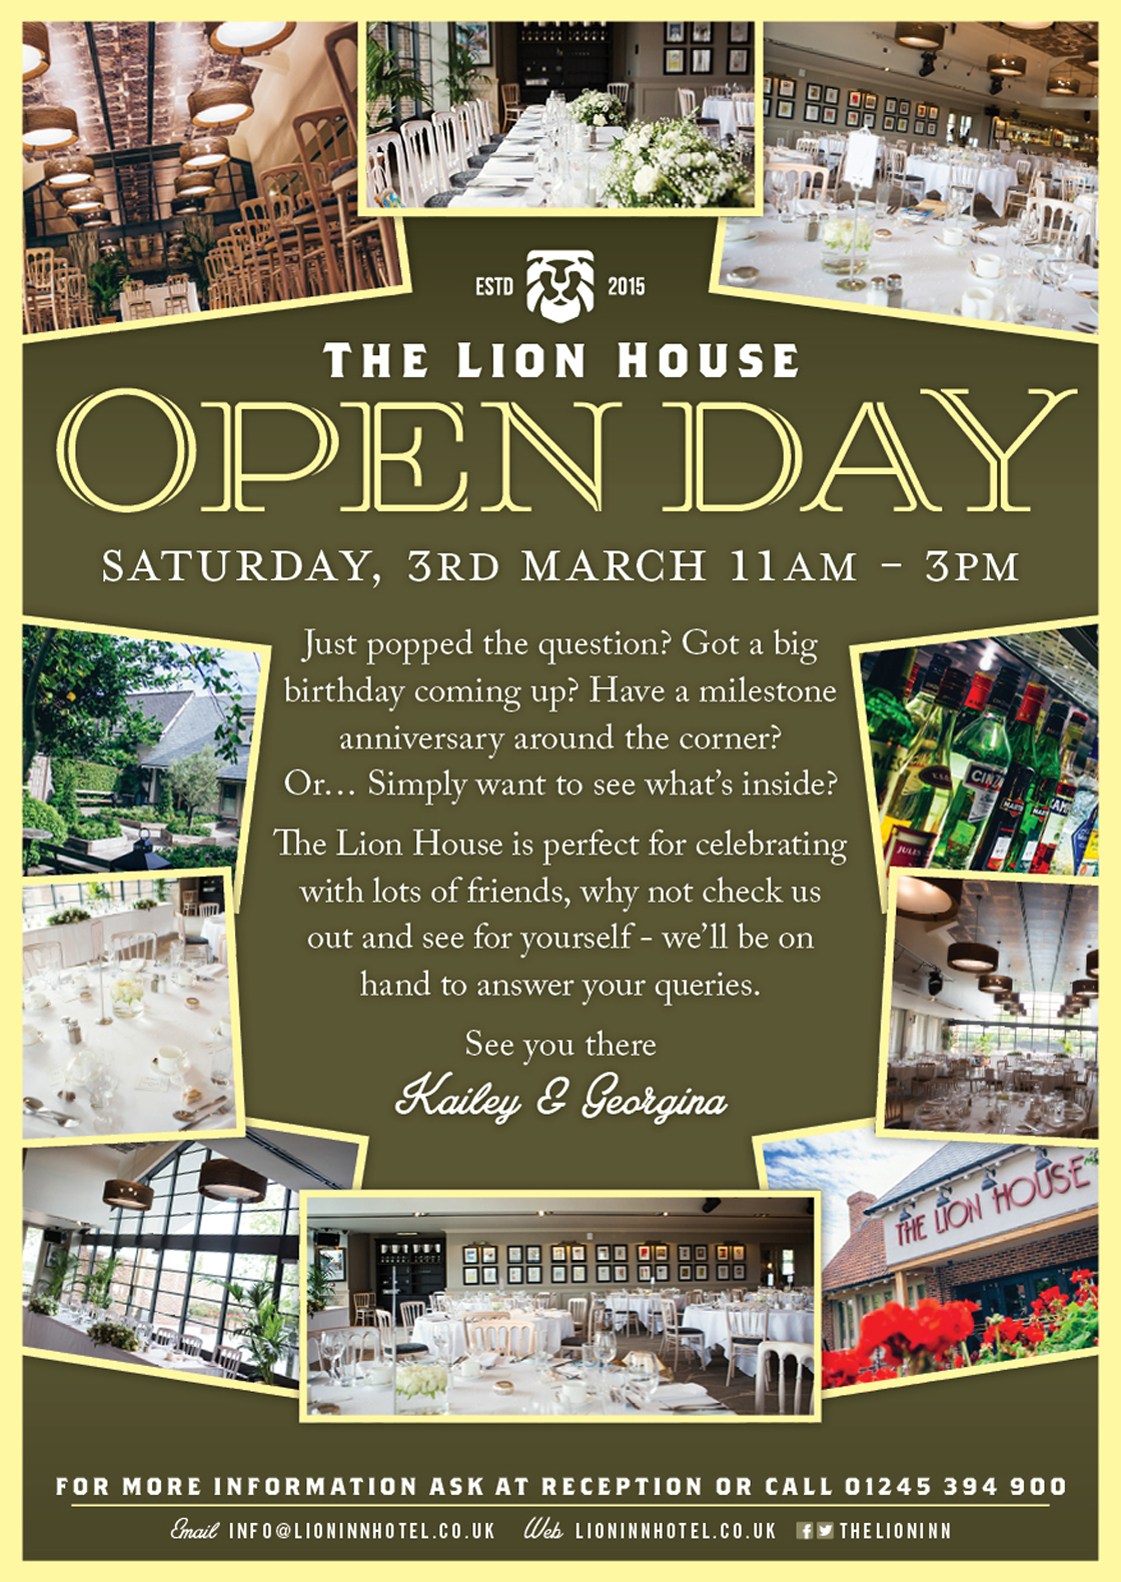 The Lion House Open Day